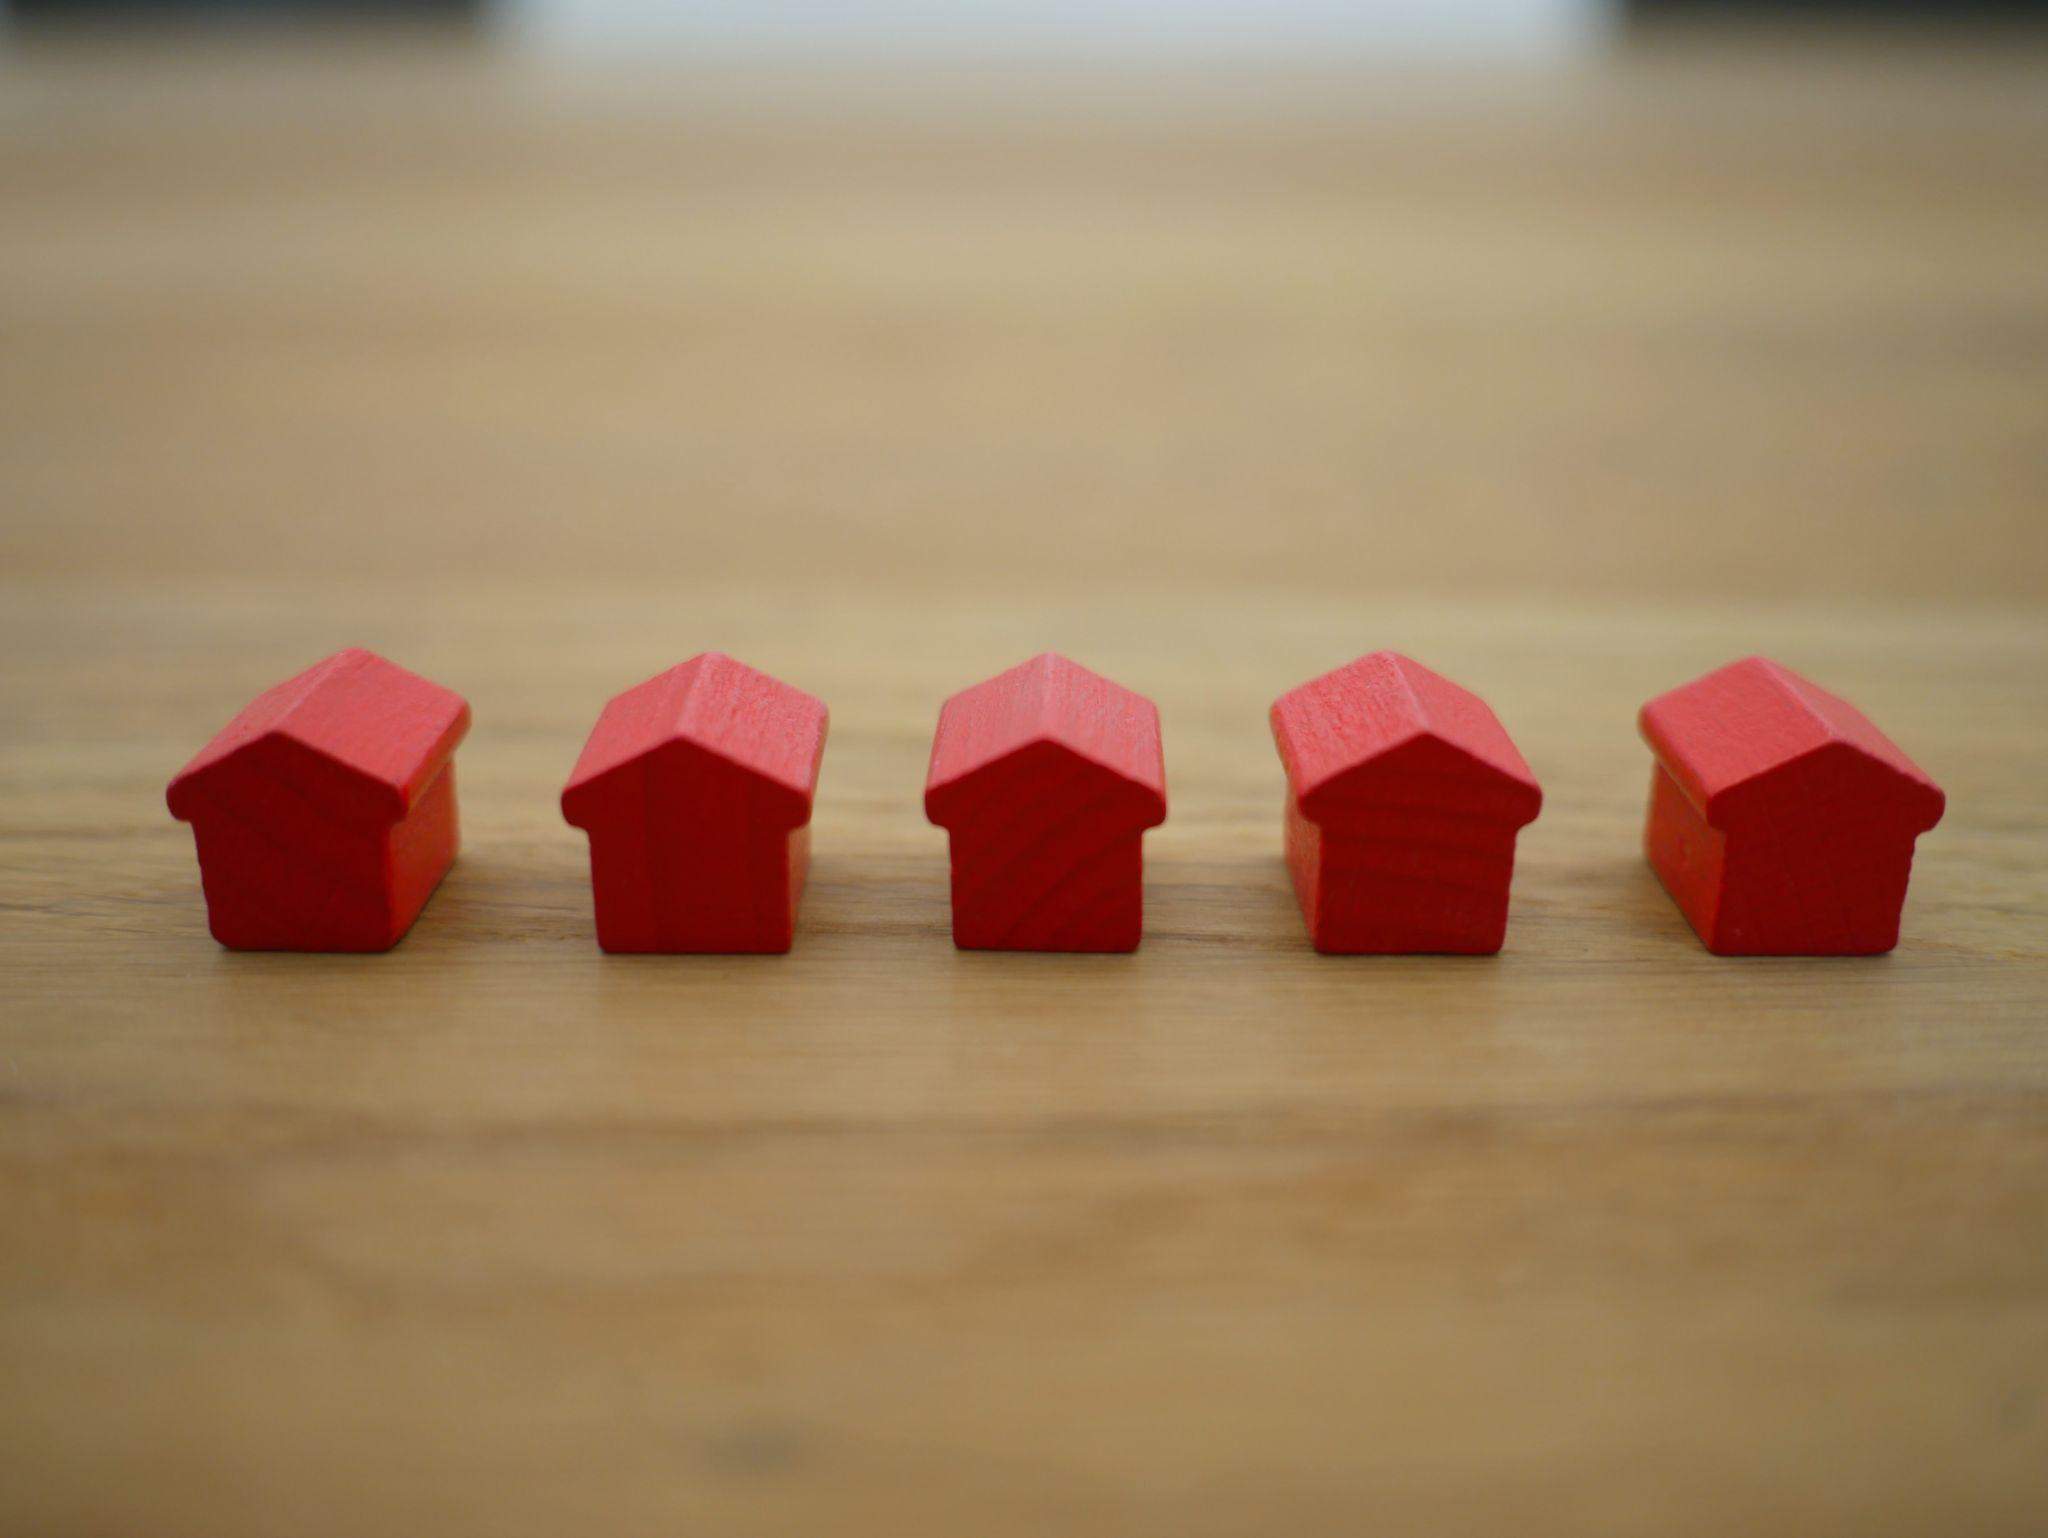 red small houses home real estate planning